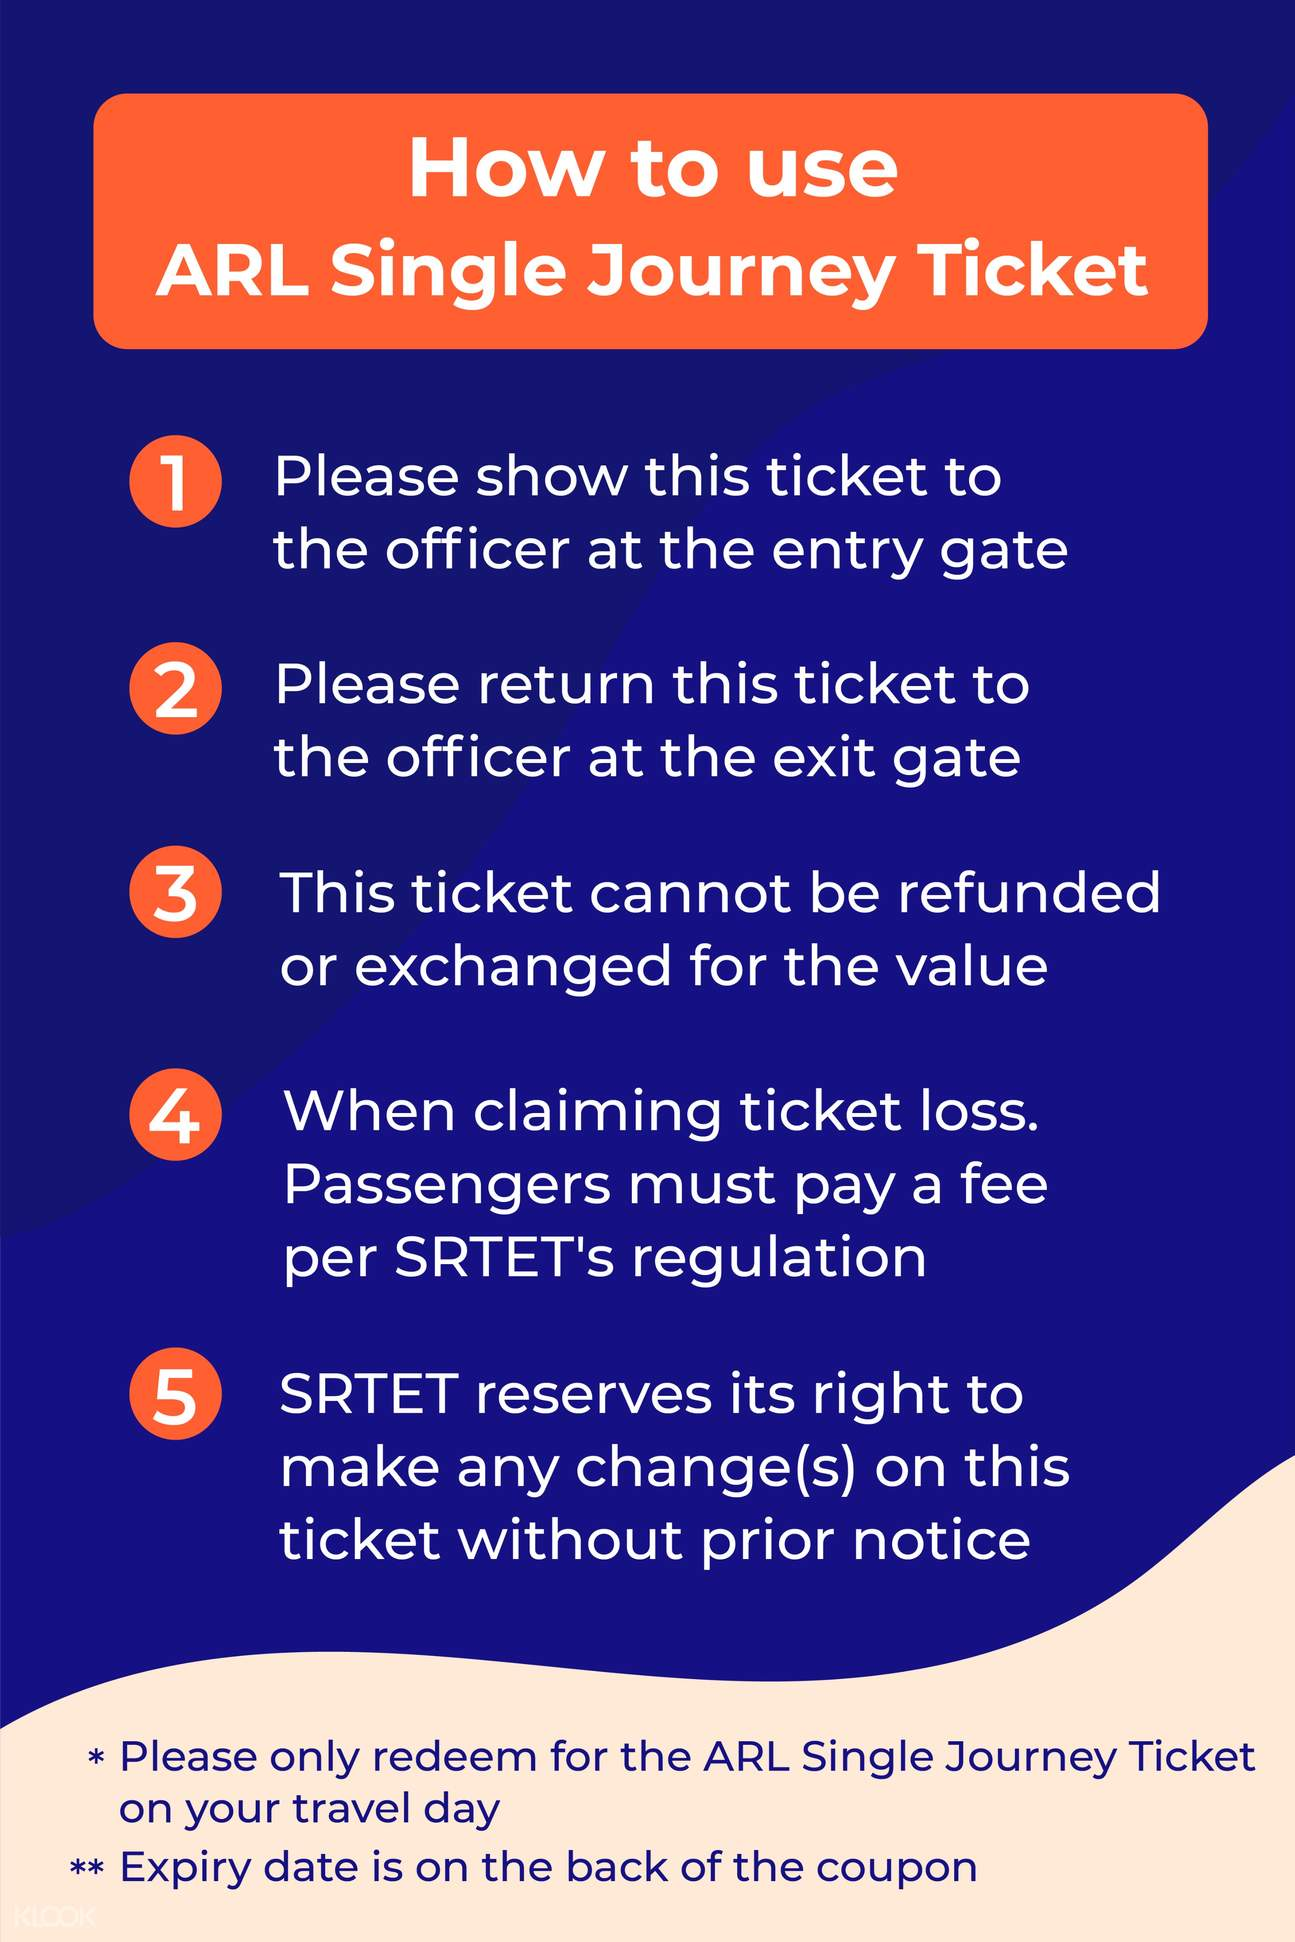 how to use ARL single journey ticket